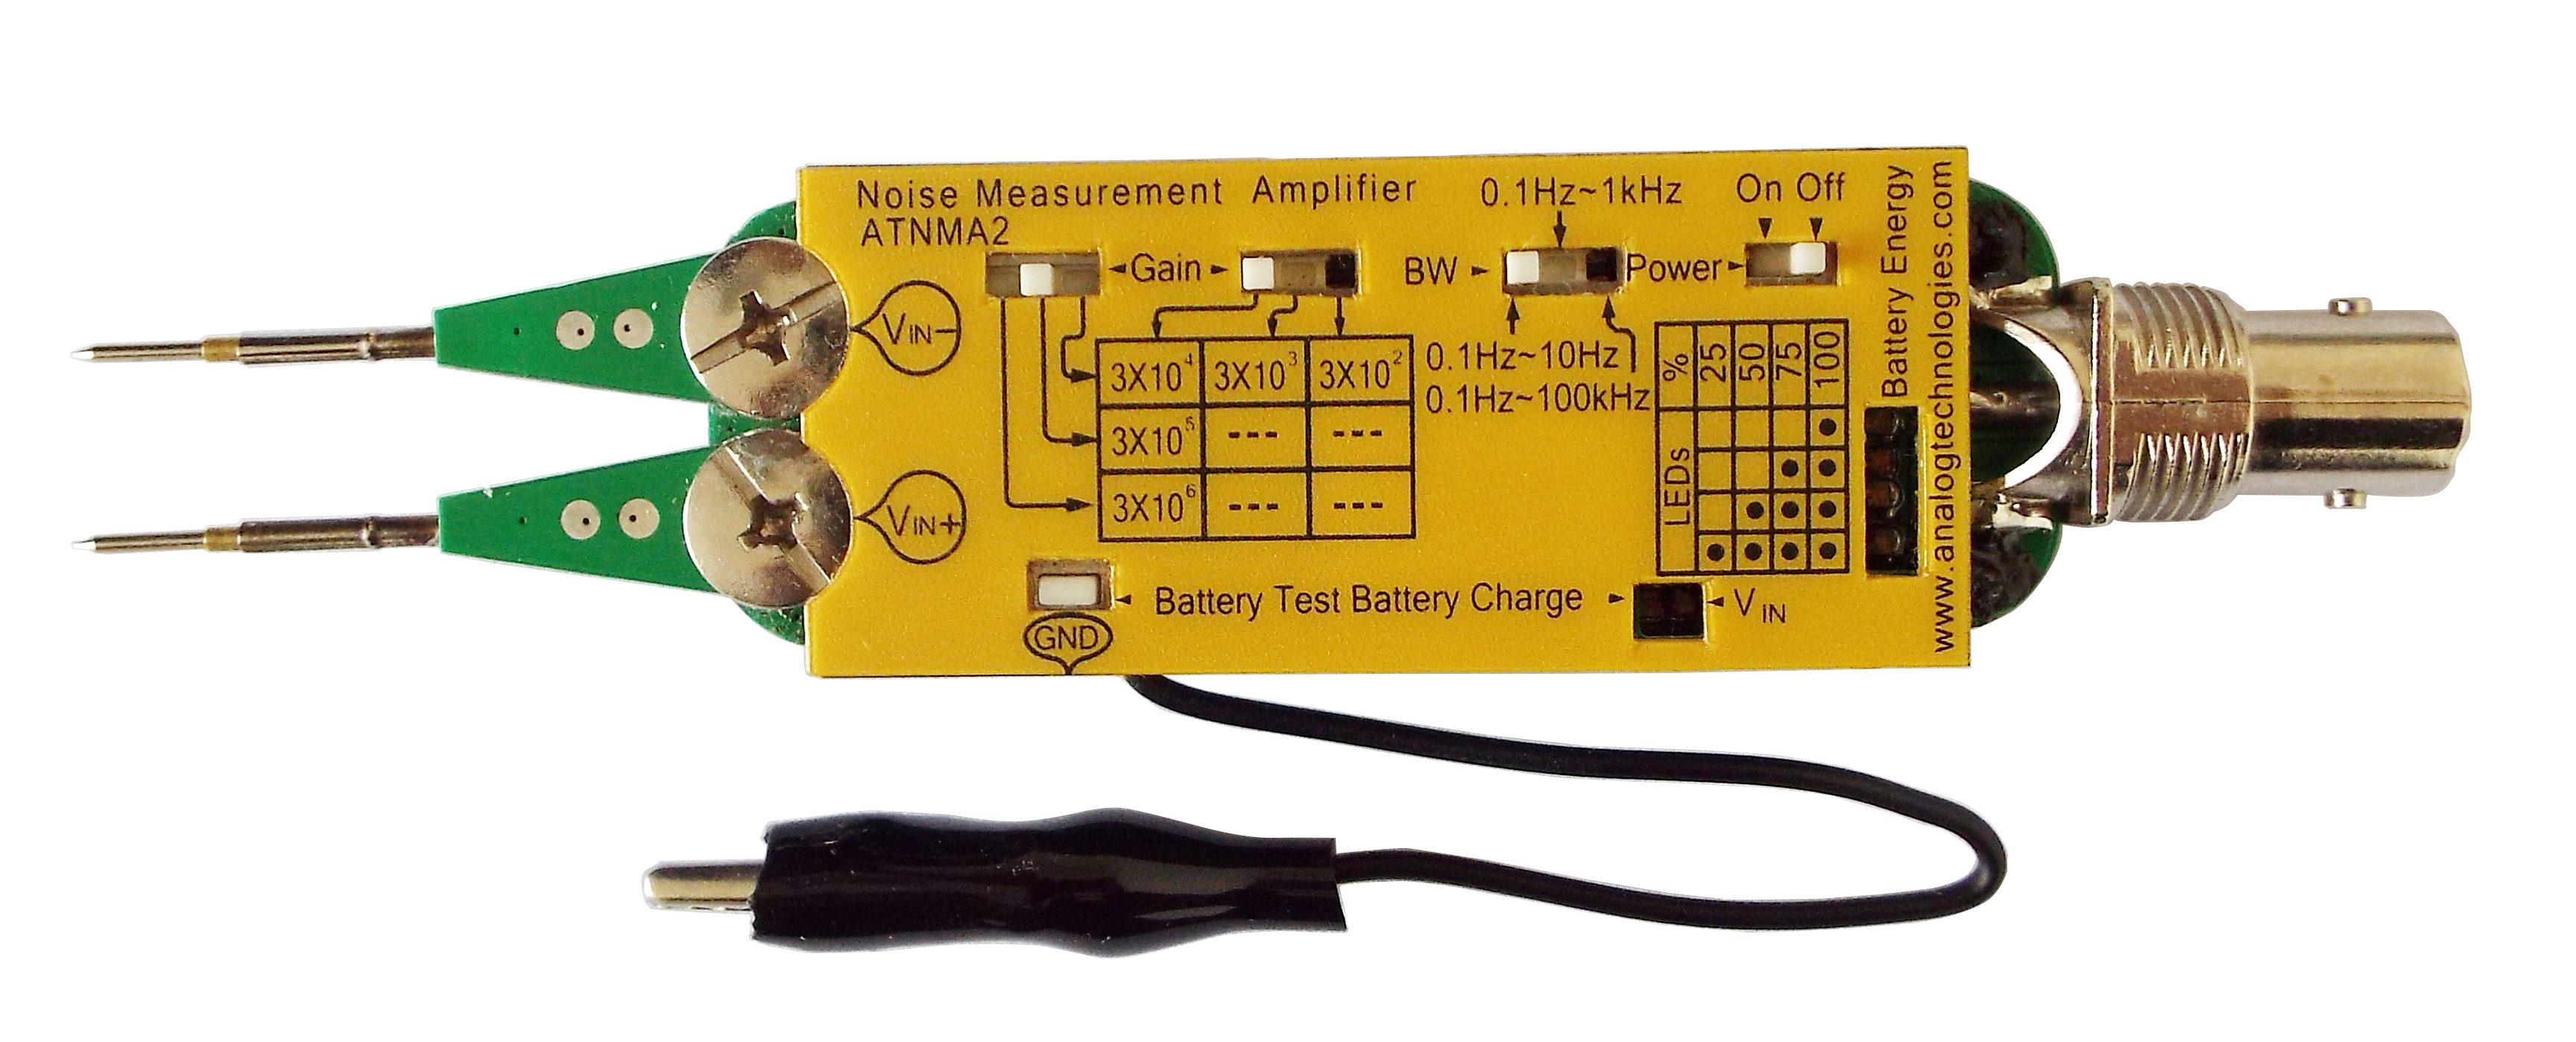 Noise Measurement Amplifier Analog Technologies Inc Current And Amplification Electronics Electrical